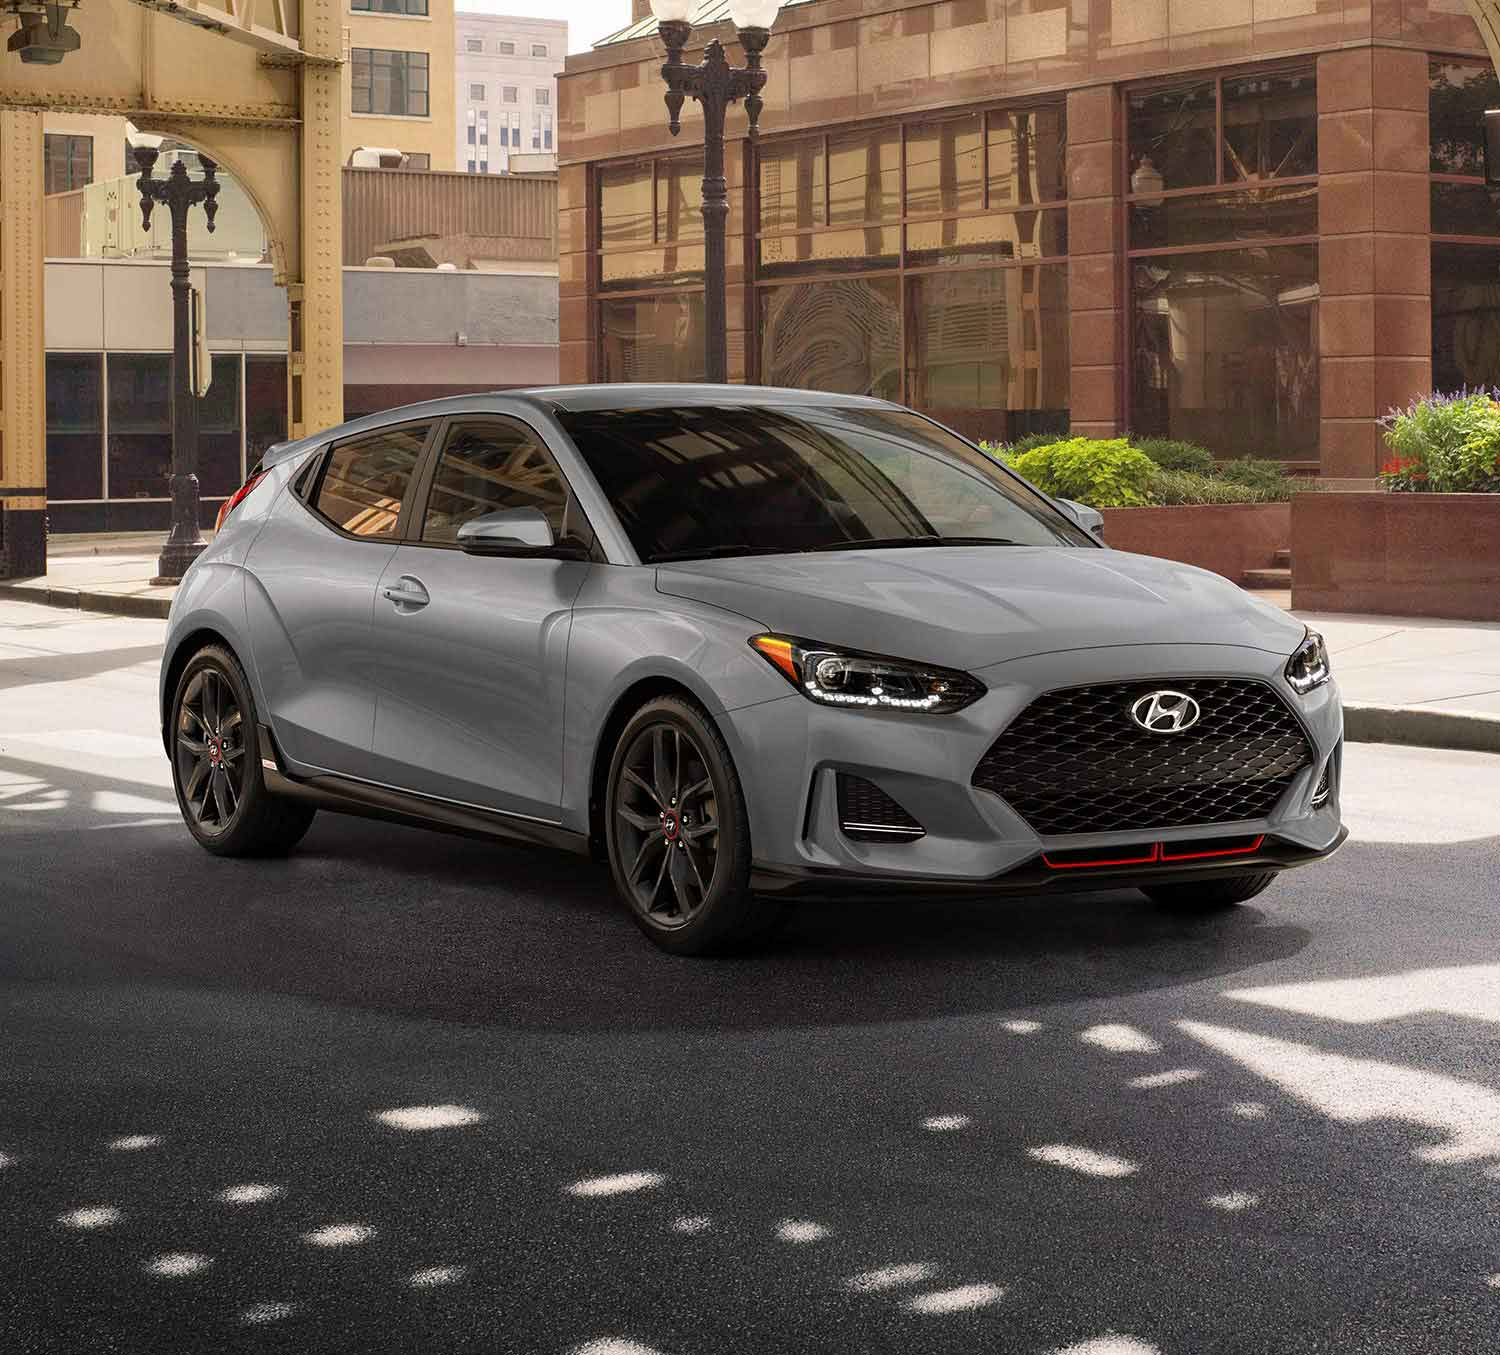 73 Great 2019 Hyundai Veloster Turbo Pricing by 2019 Hyundai Veloster Turbo